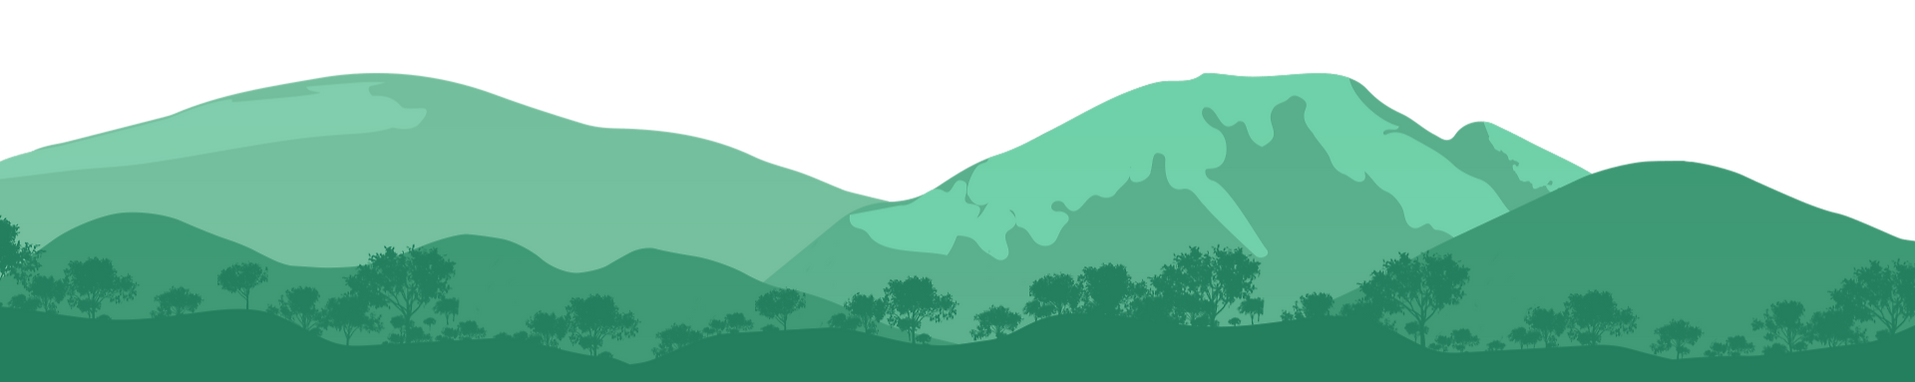 MOUNTAINSCAPE_WIDE_png_edited.png